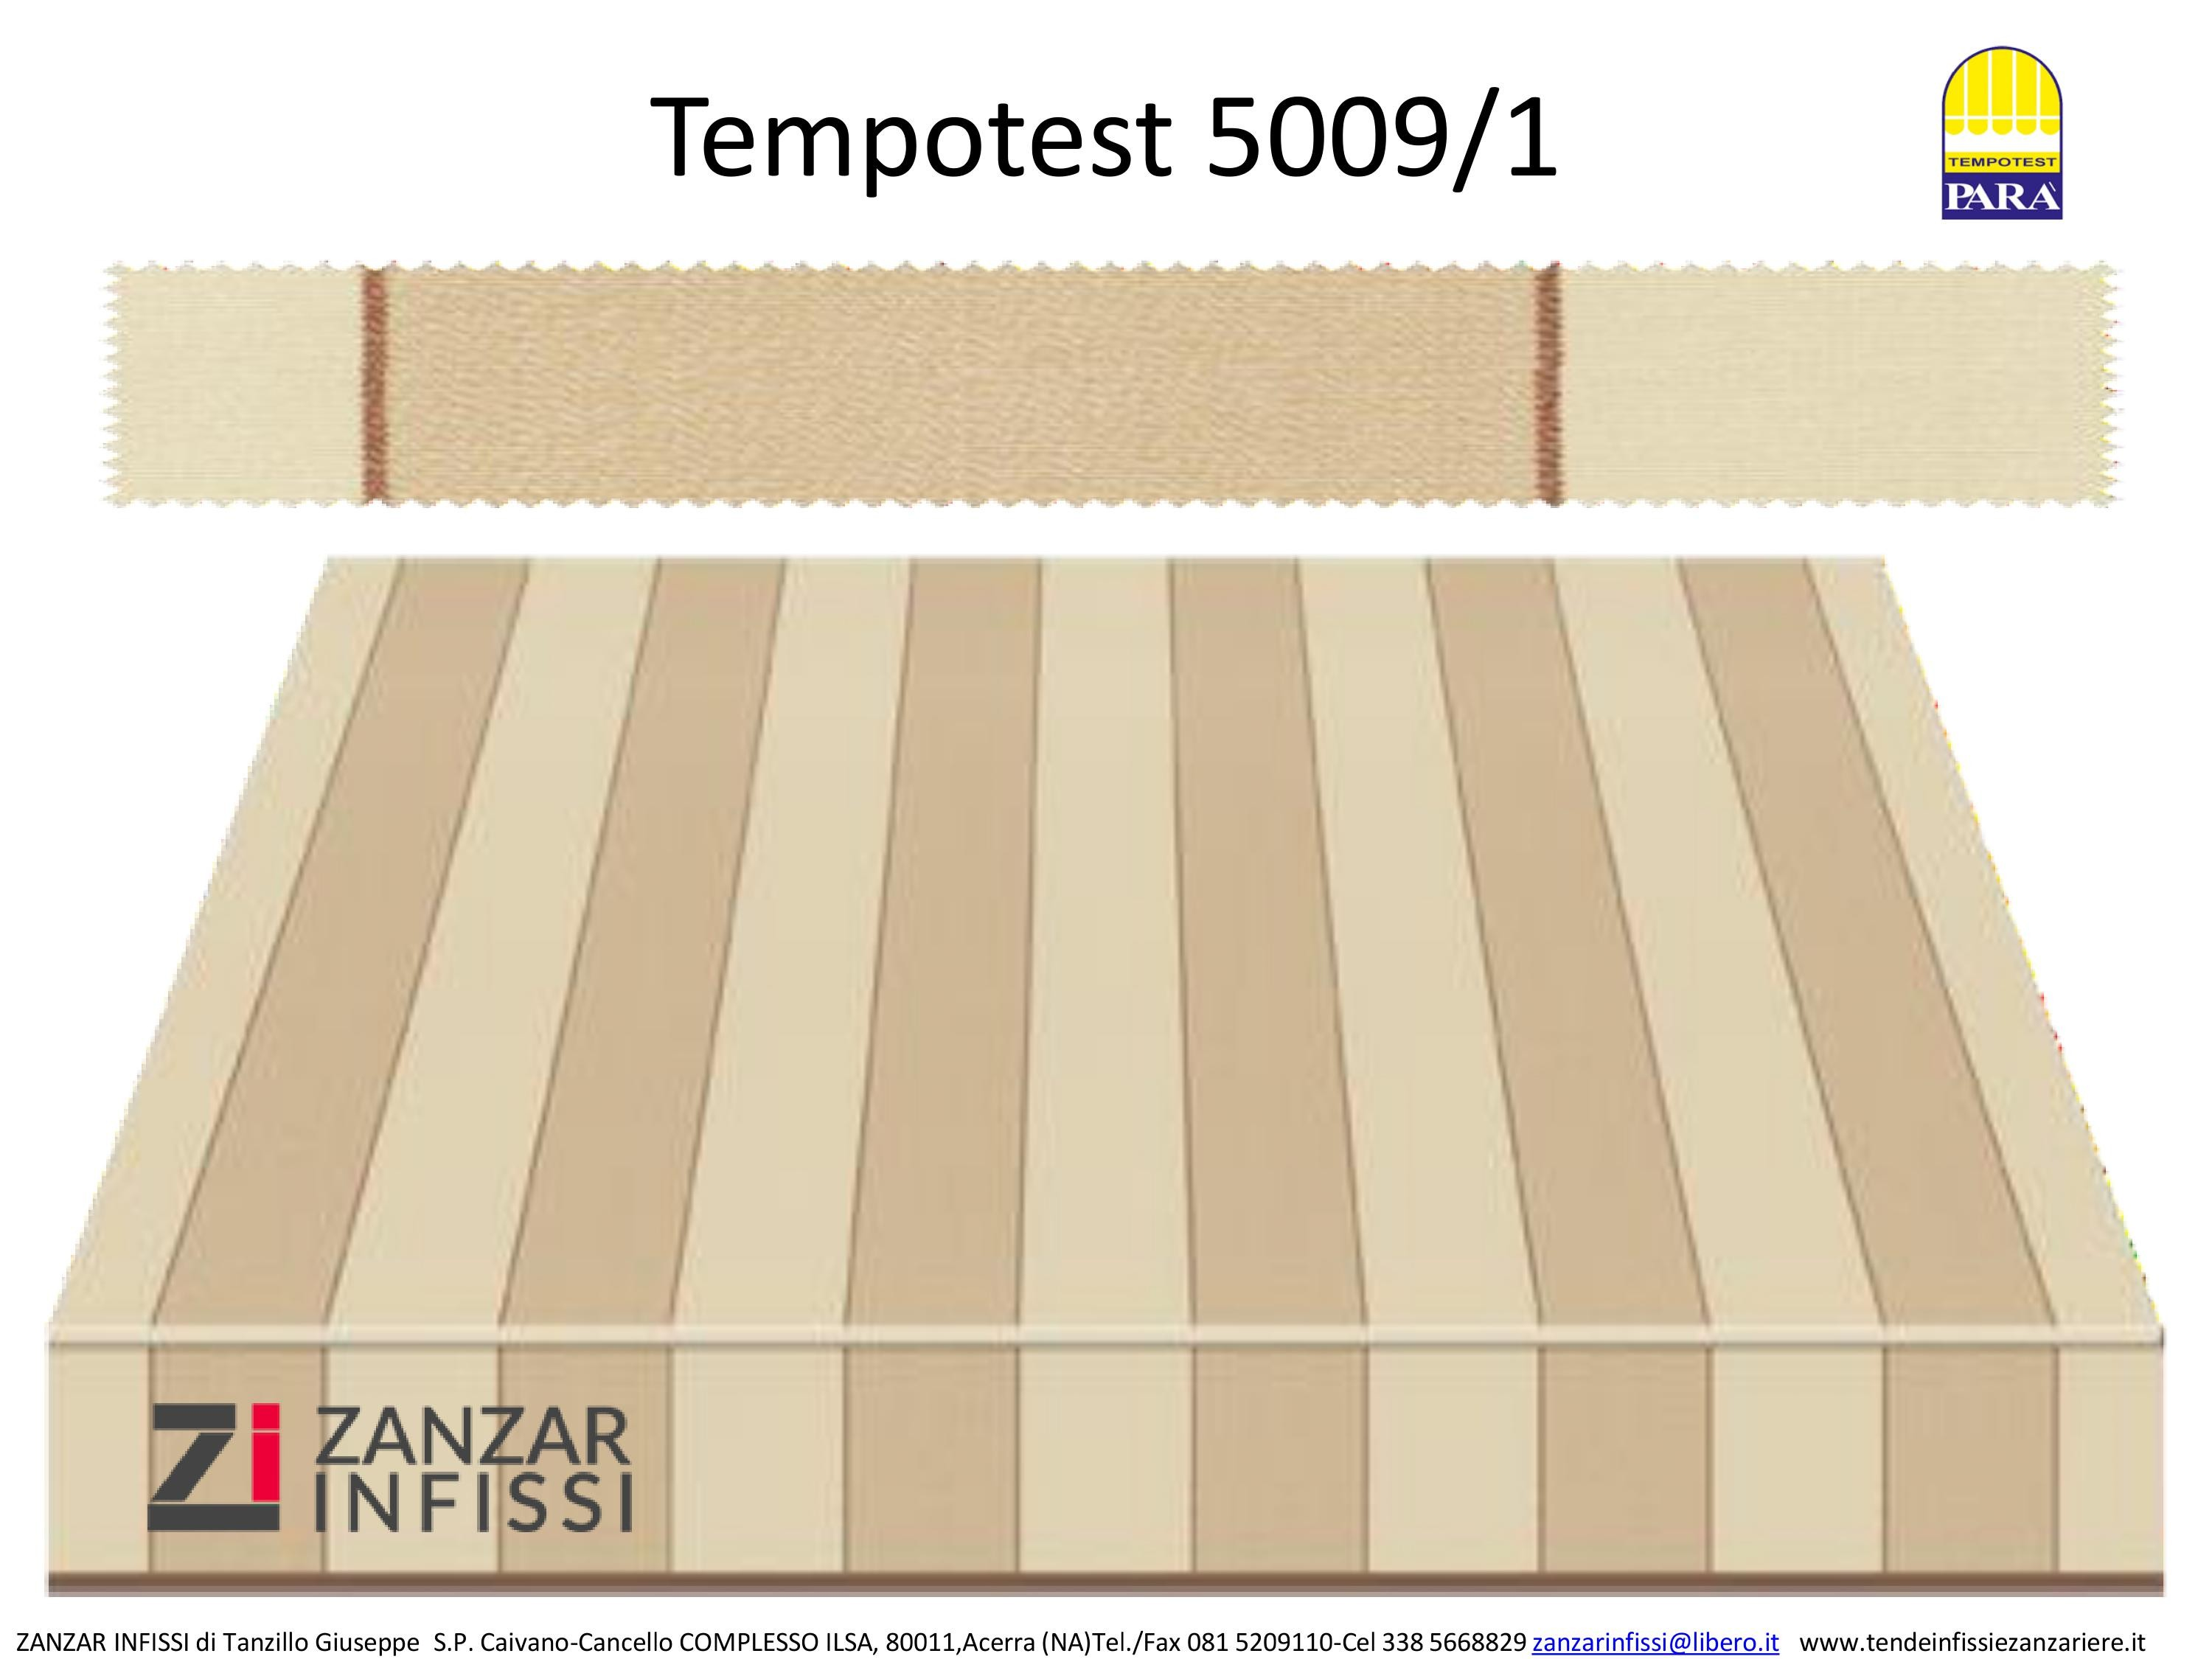 Tempotest 5009/1